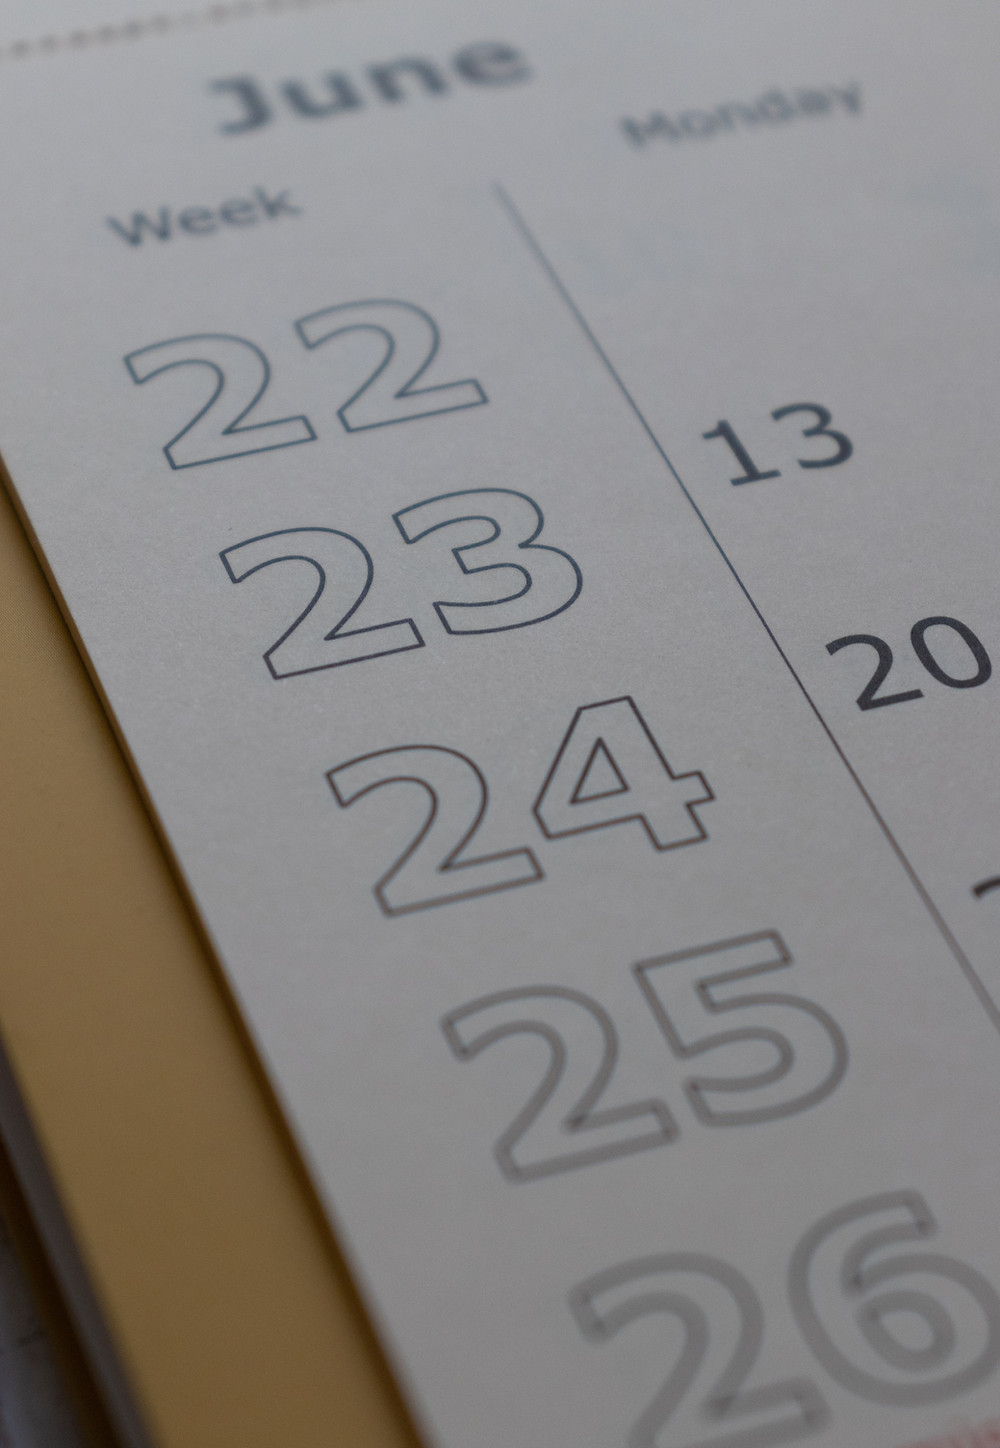 Calendar for June with dates